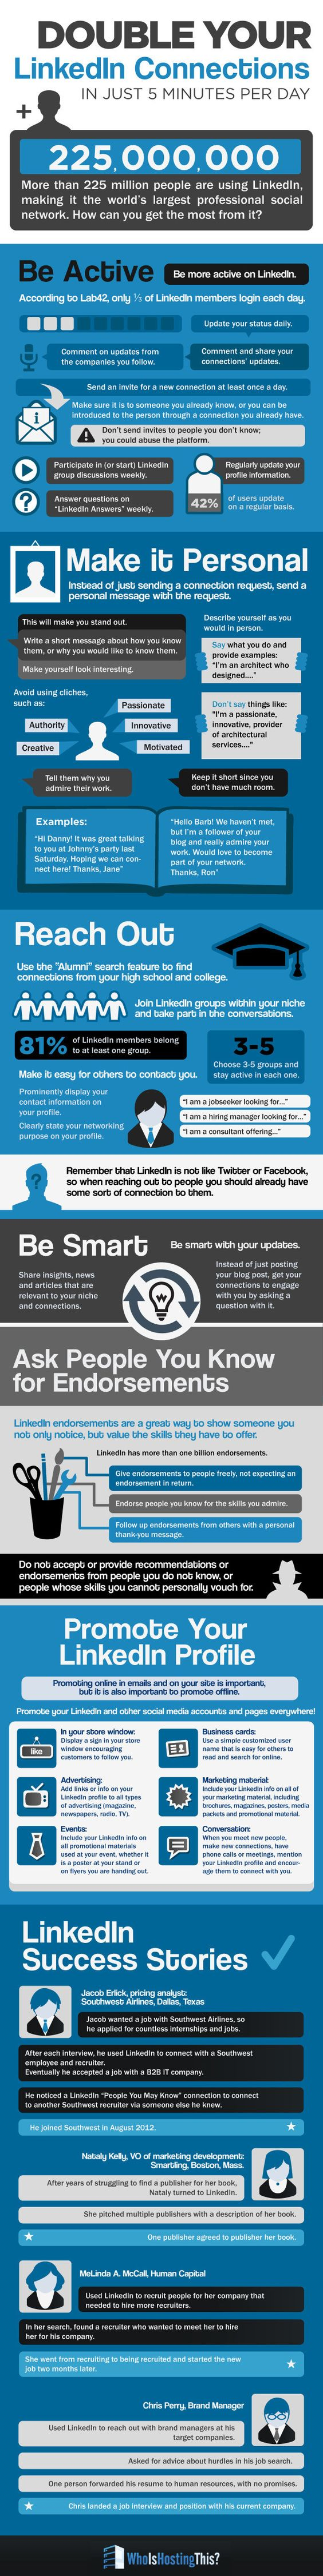 "SOCIAL MEDIA - ""How to Double Your #LinkedIn Connections [INFOGRAPHIC]."" Not sure if the 'promise' is realistic but some good advice on the management of your Linked'In account to increase contacts and traffic........................................................... Visit Now! OwnItLand.com:"